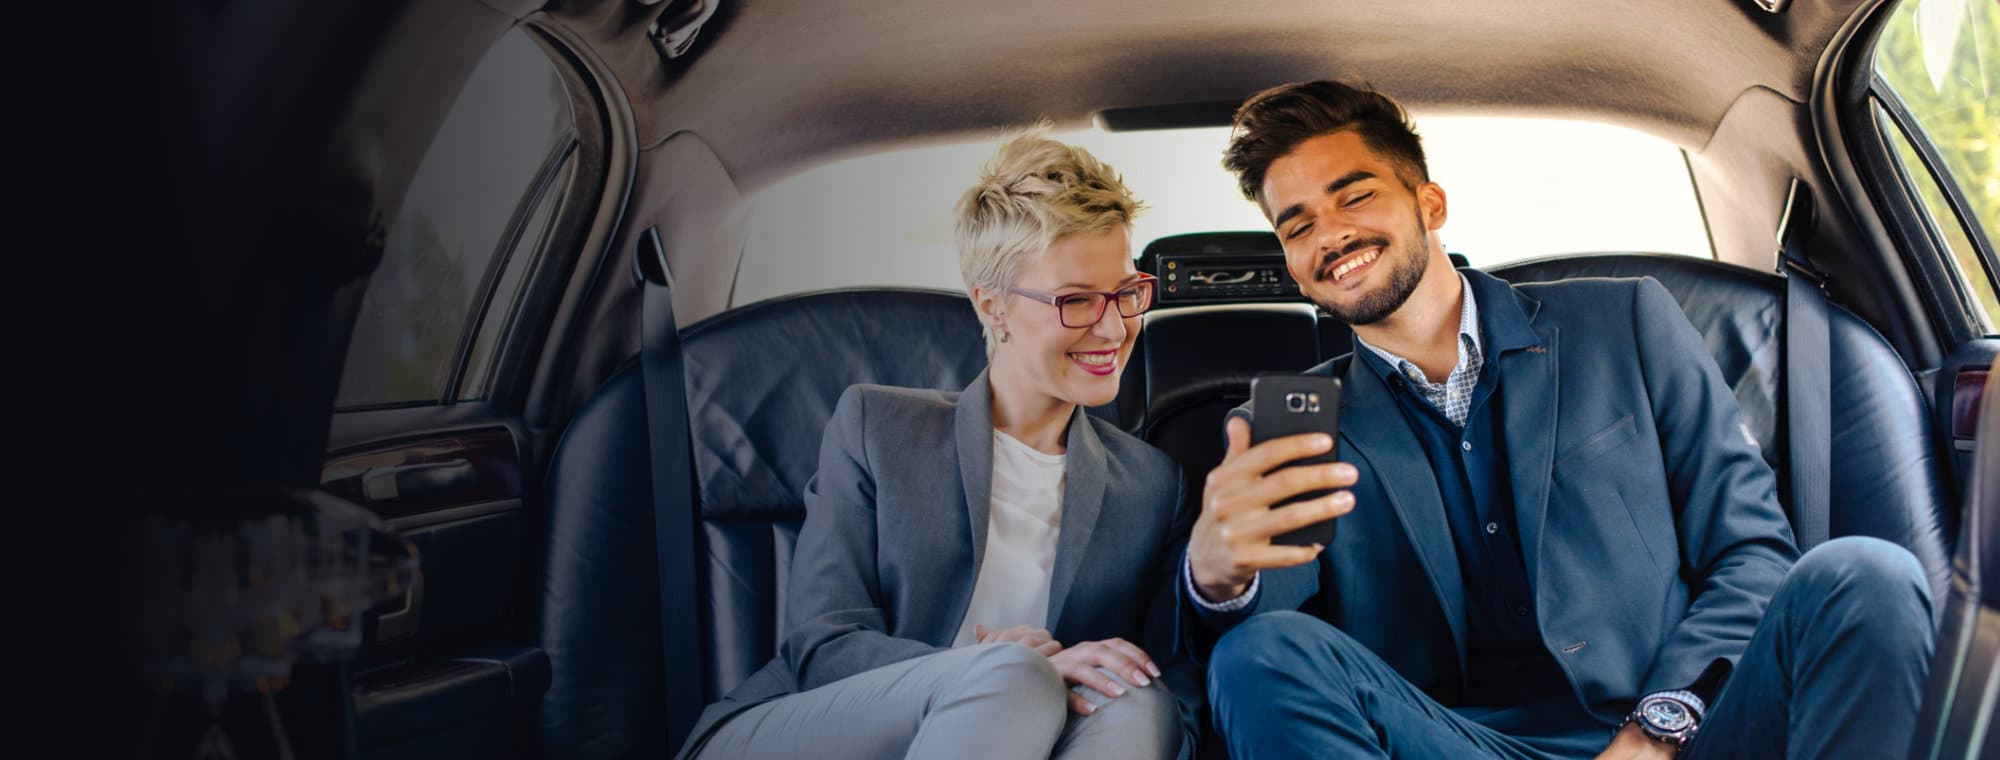 man and a woman inside a car looking at a smartphone